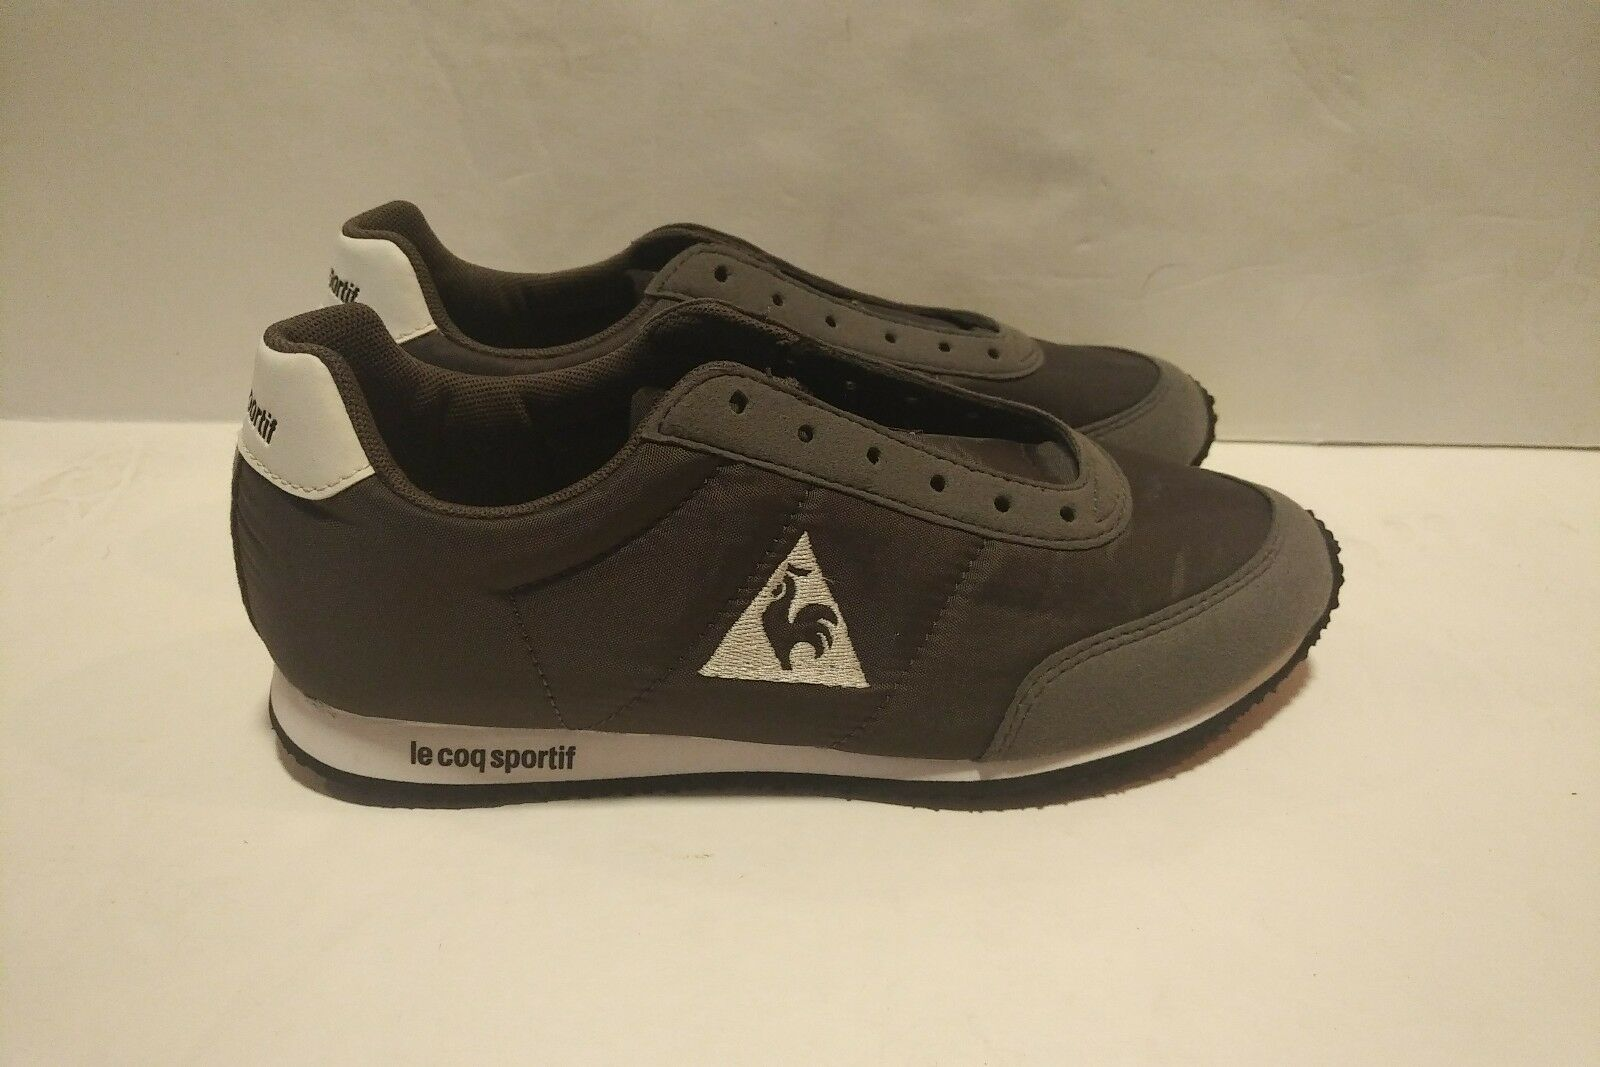 Le Coq Sportif 1520613 Sneakers shoes Size 5 New